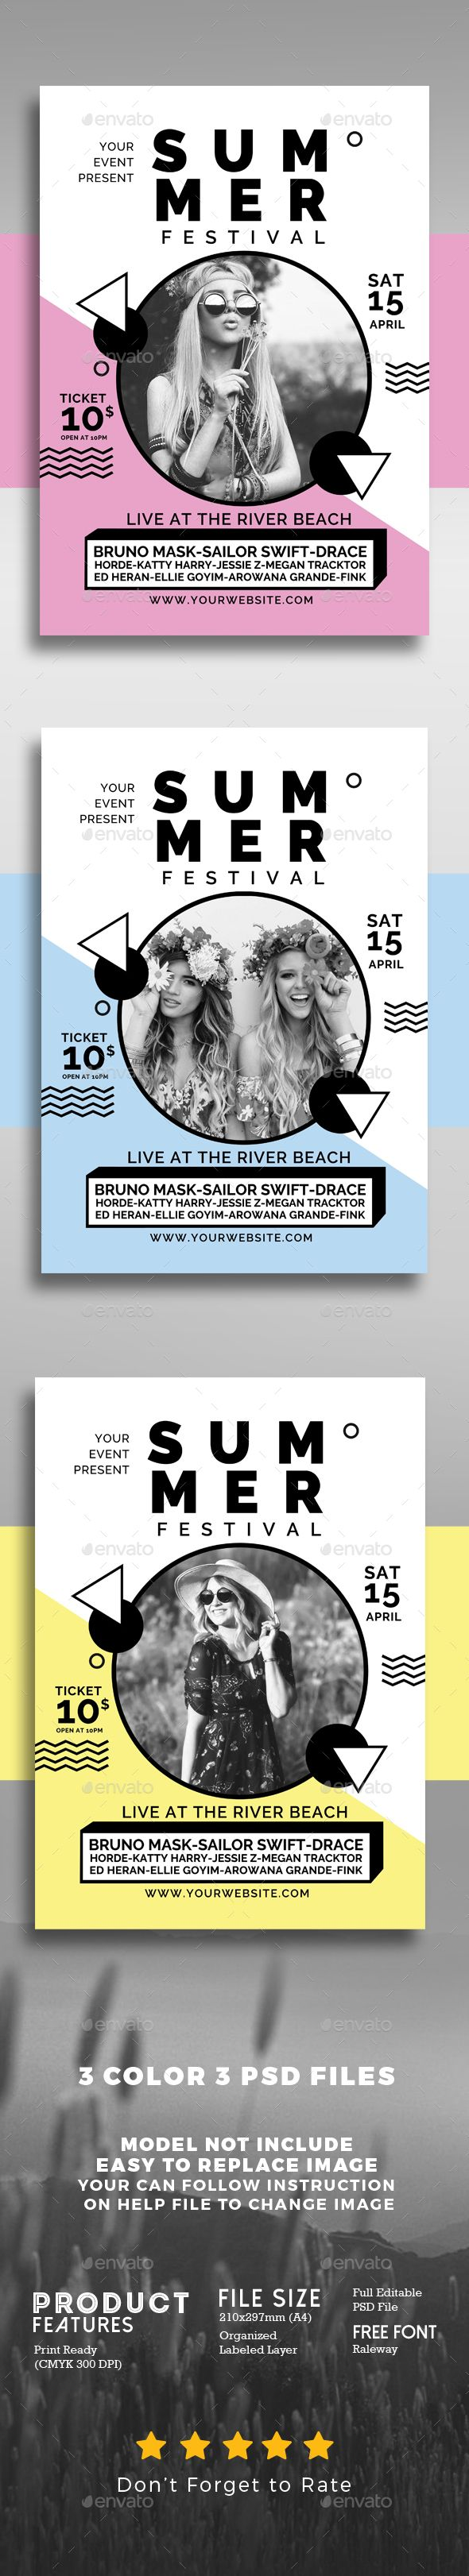 Summer Music Festival Flyer Template PSD